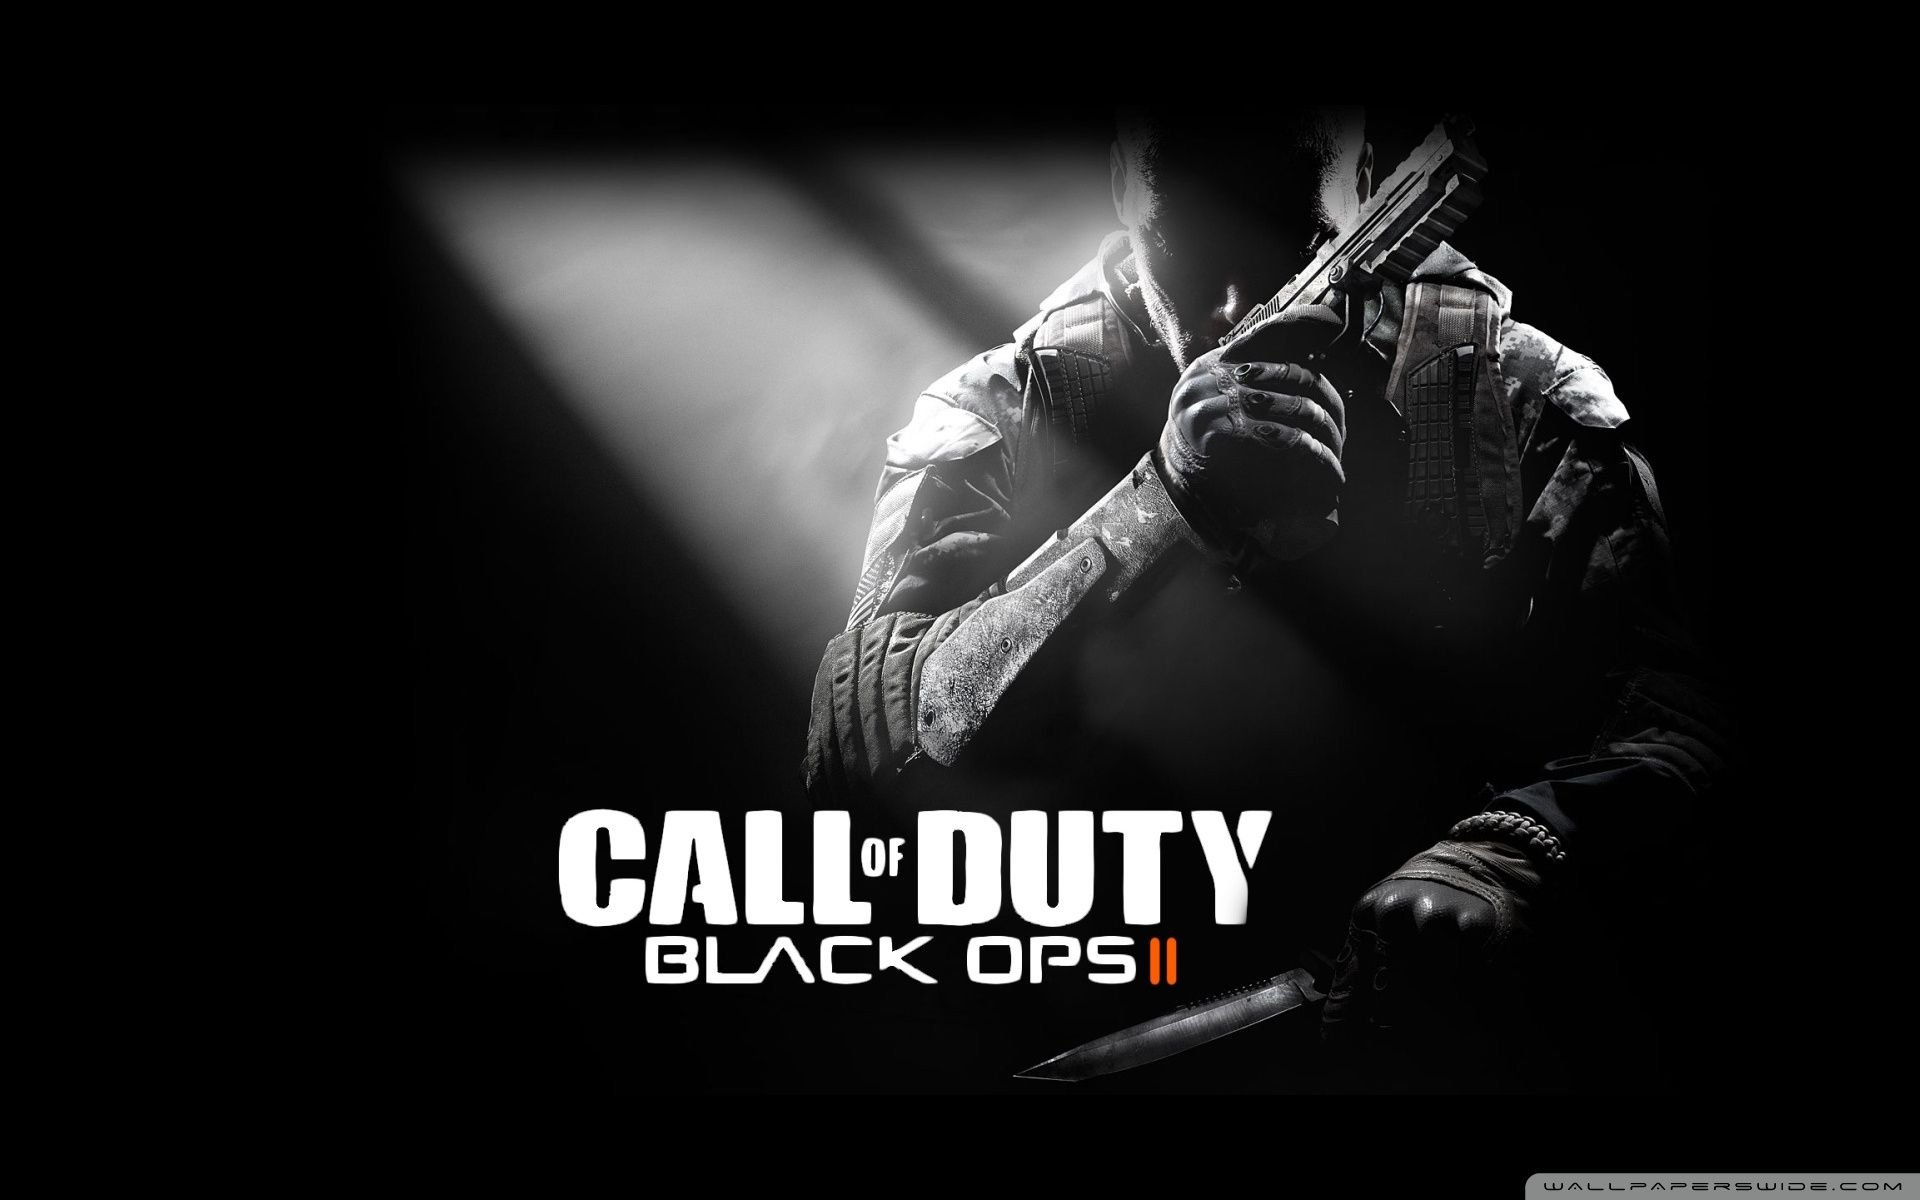 Call Of Duty Black Ops 2 Wallpapers Top Free Call Of Duty Black Ops 2 Backgrounds Wallpaperaccess